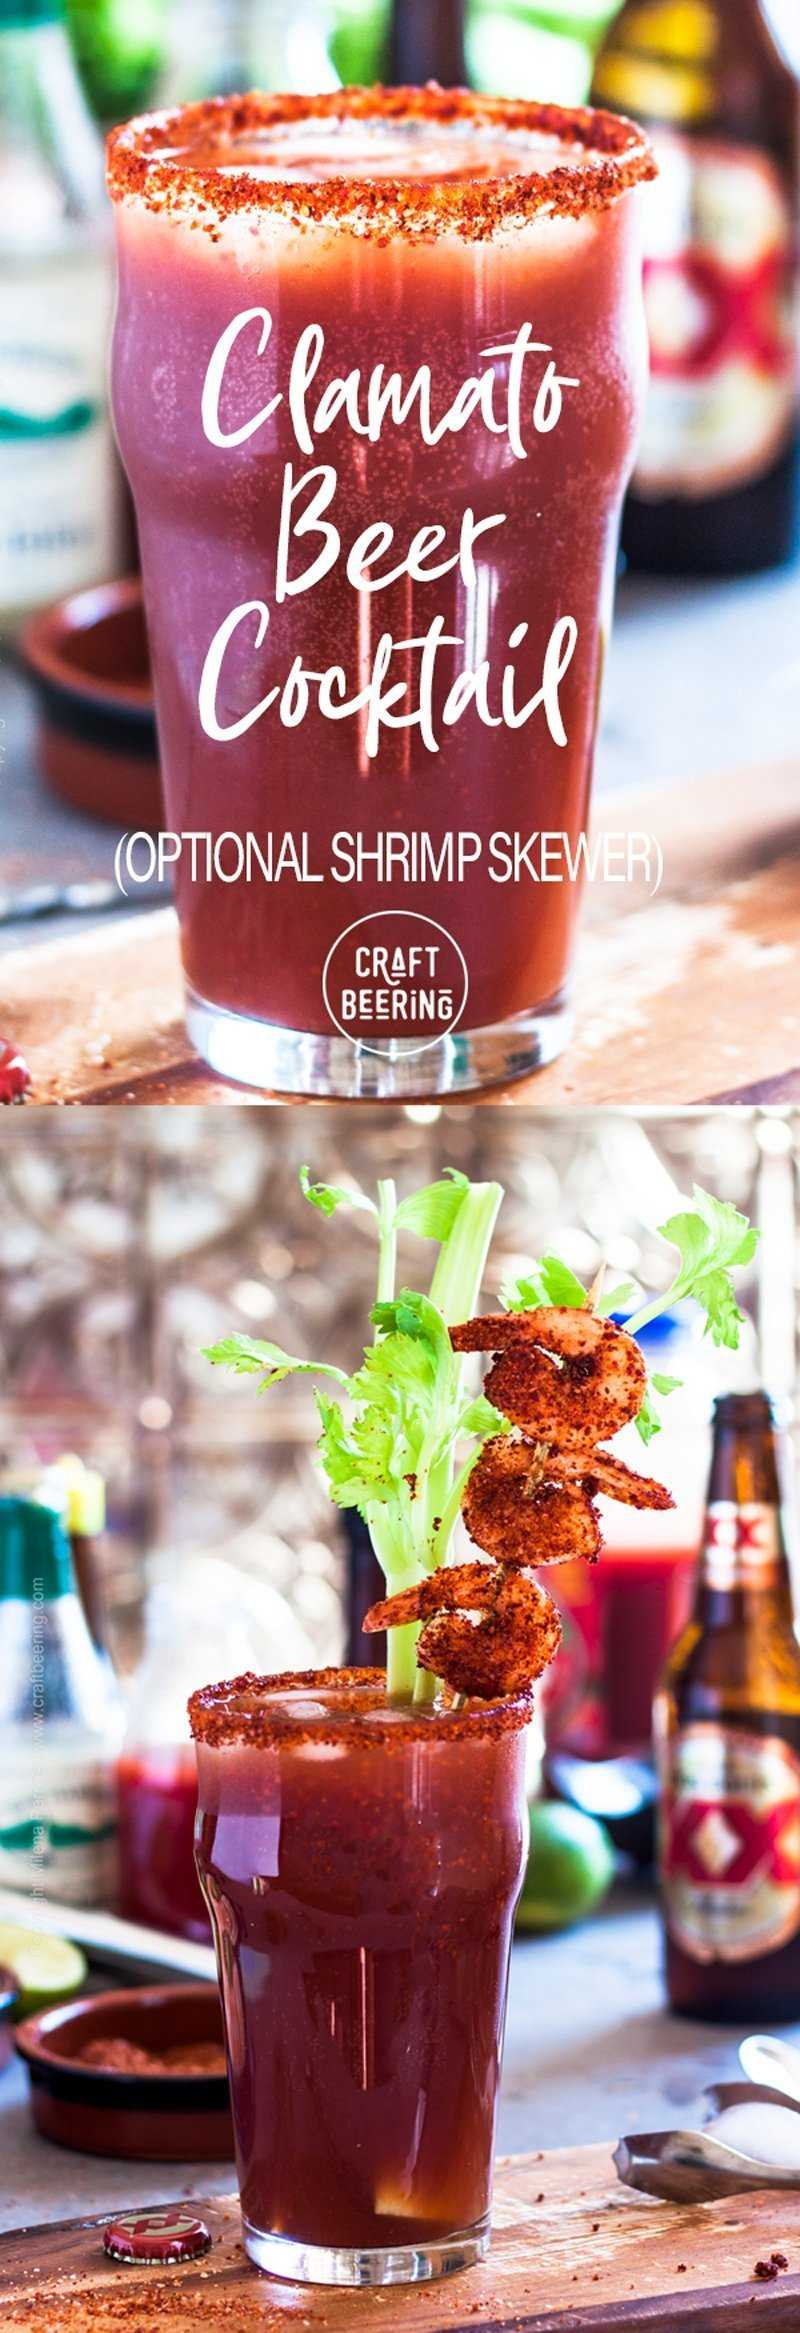 Clamato and beer - refreshing cocktail with optional shrimp skewer